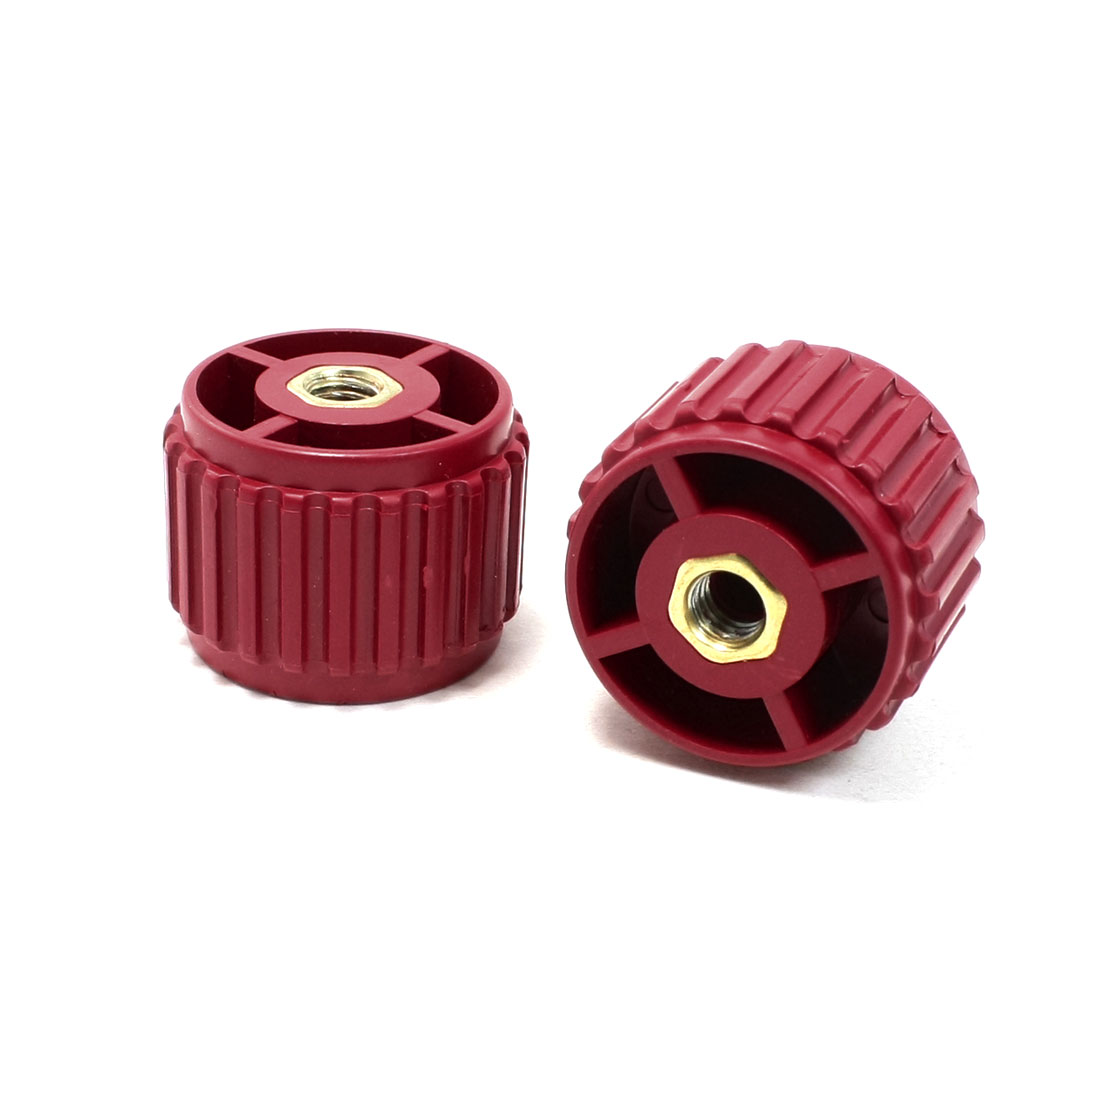 2 Pieces 8mm Bore 30mm High Dark Red Enhanced Insulator GCS30*40 for Bus Bar